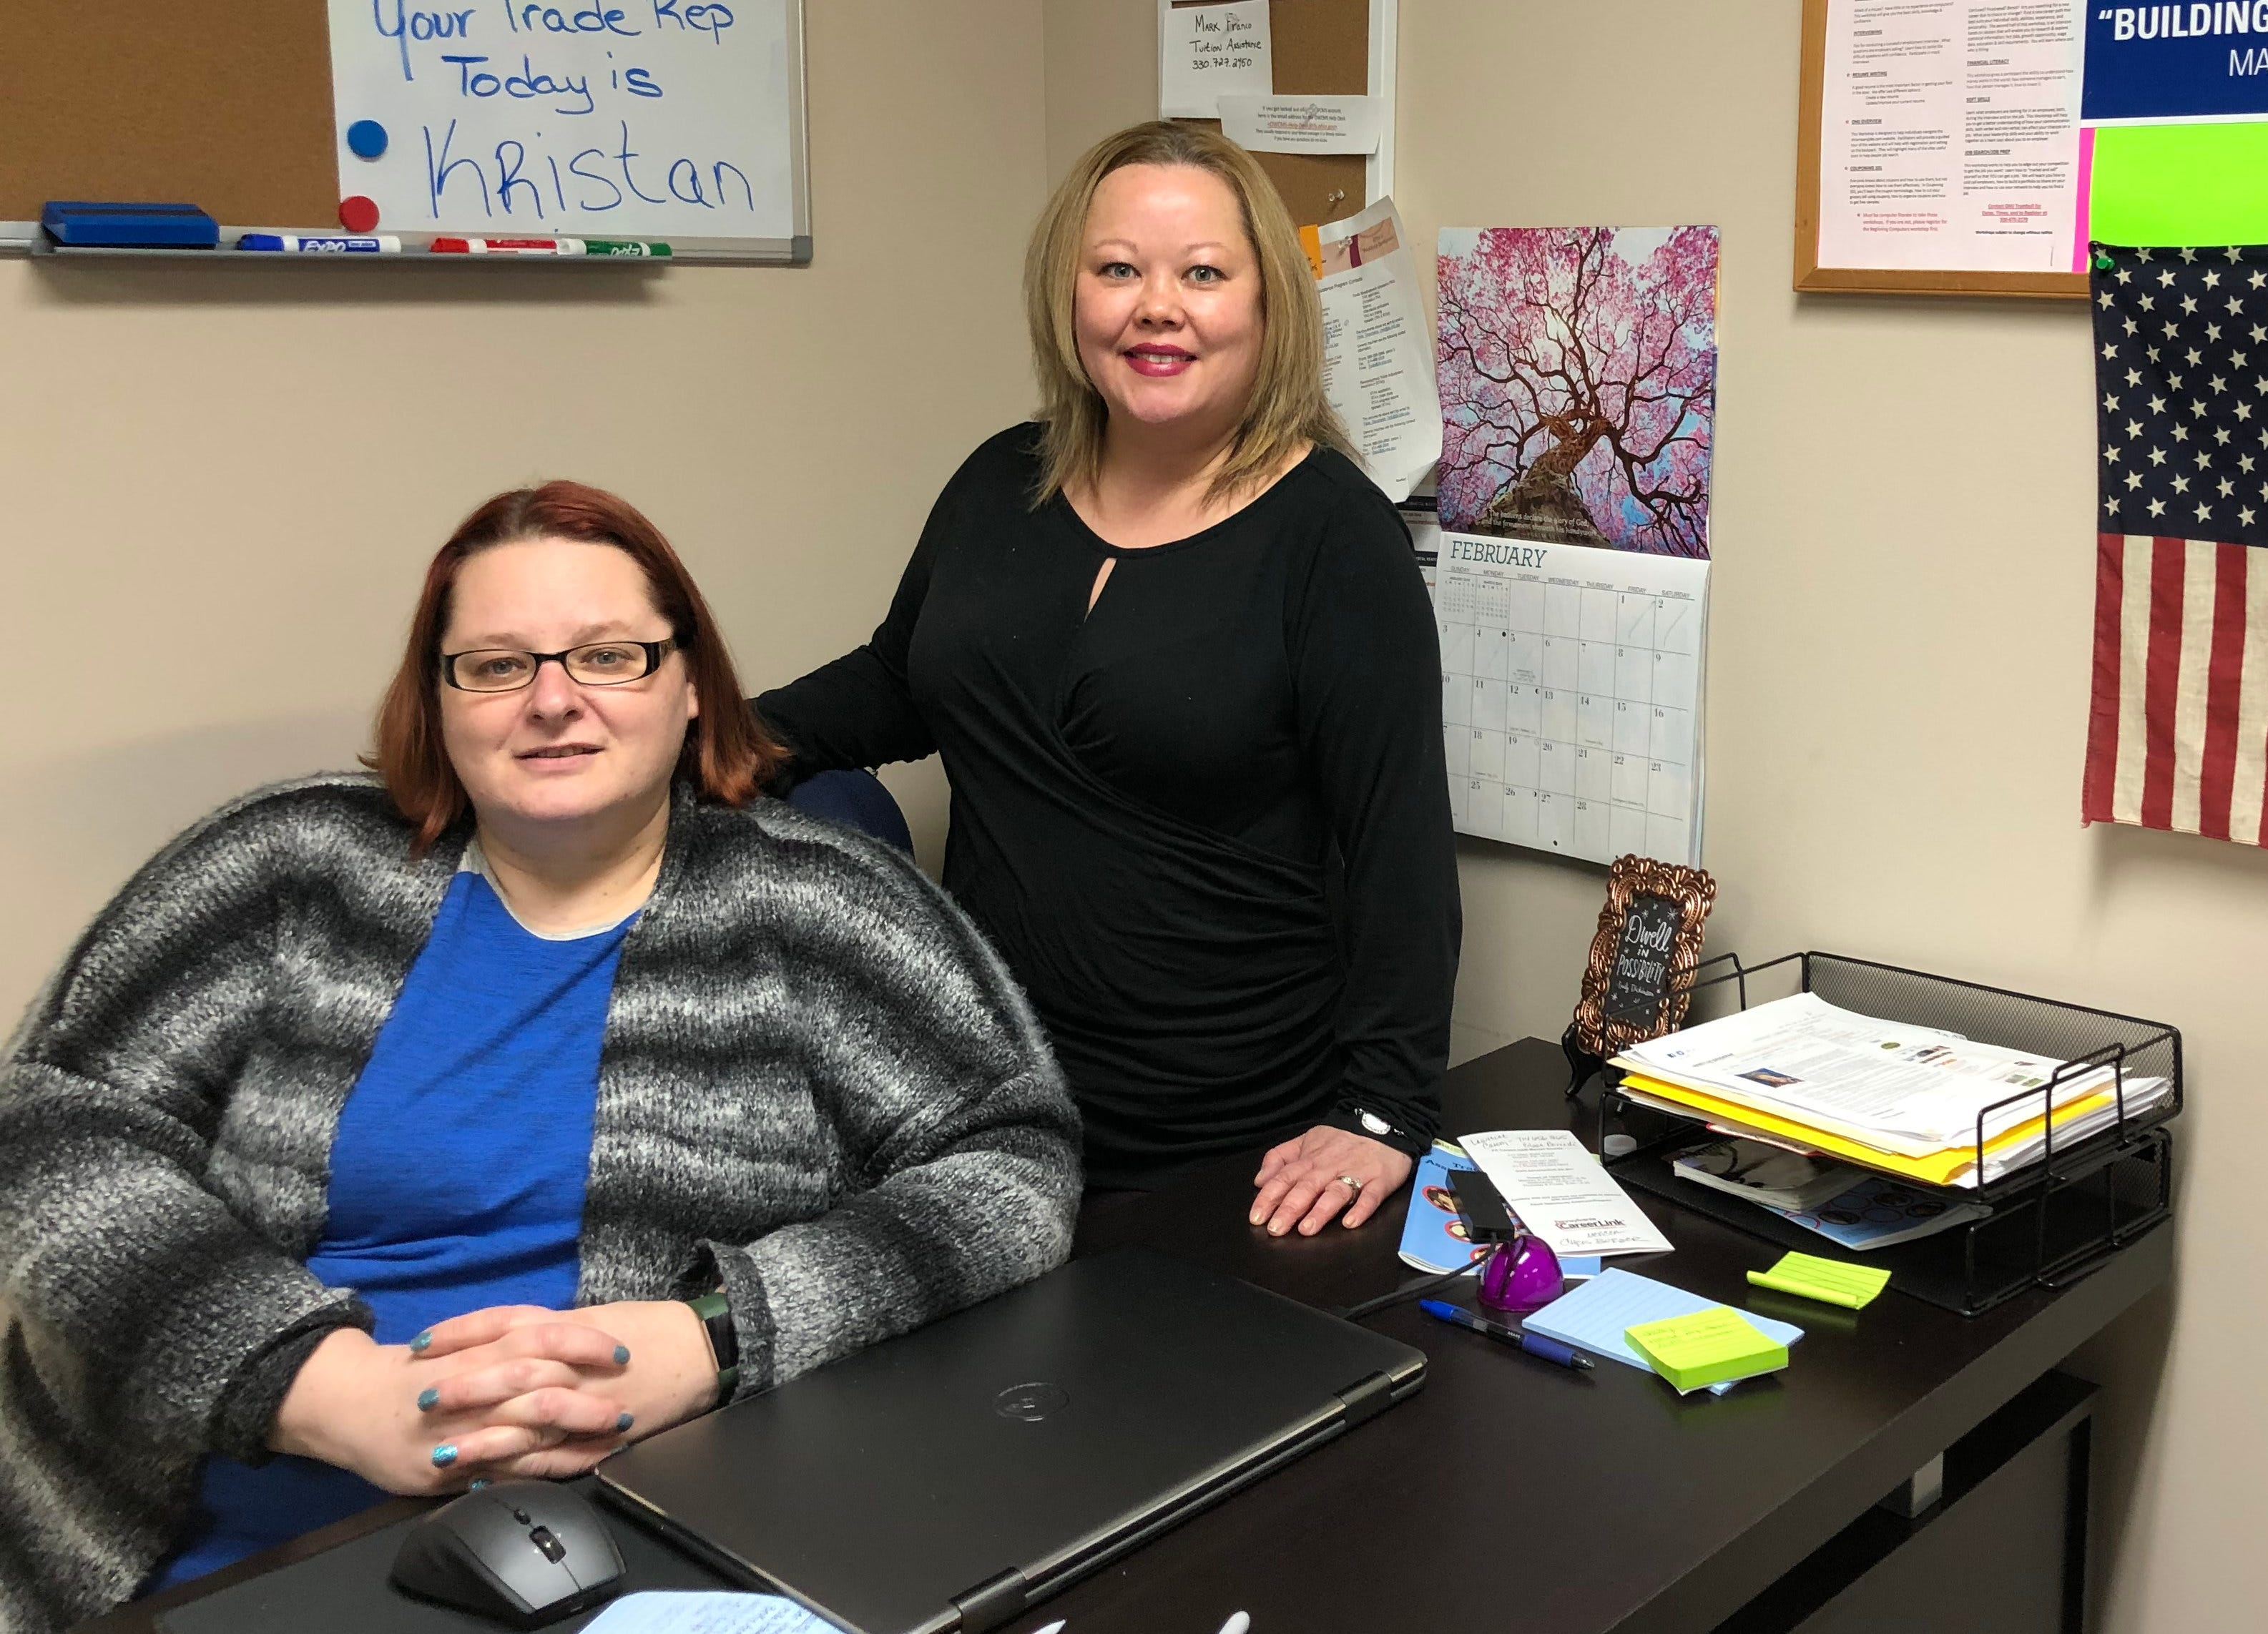 Laid off General Motors Co. assembly workers Trisha Amato and Christina Defelice now help run a worker transition center at UAW Local 1112.